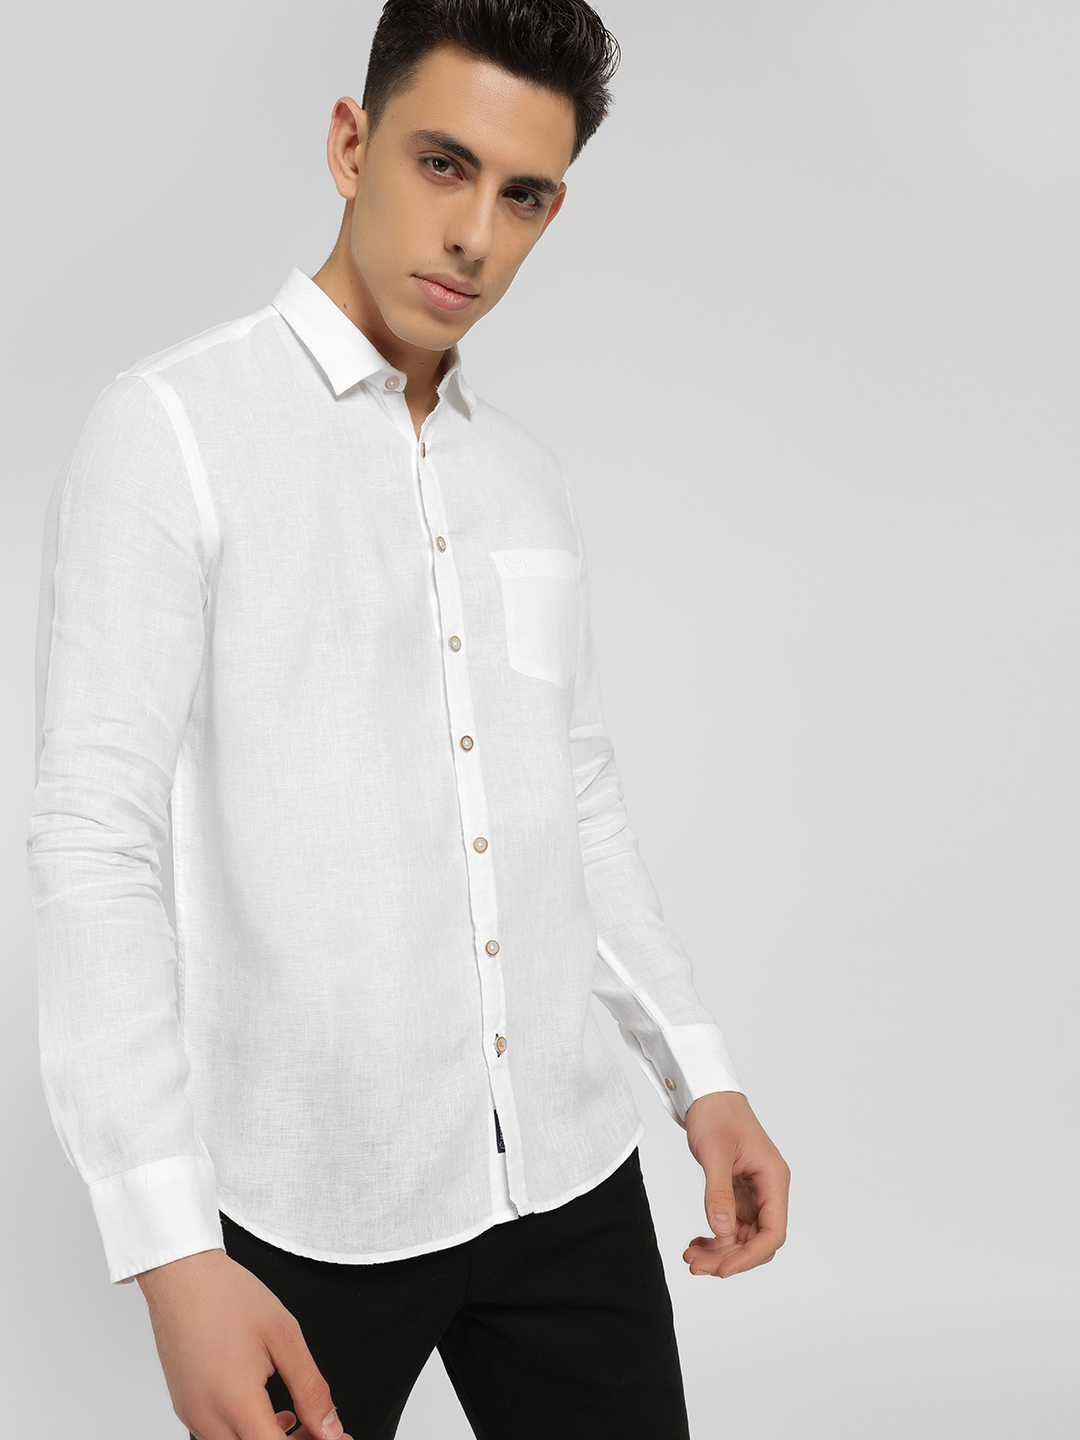 SCULLERS White Basic Slim Fit Shirt 1